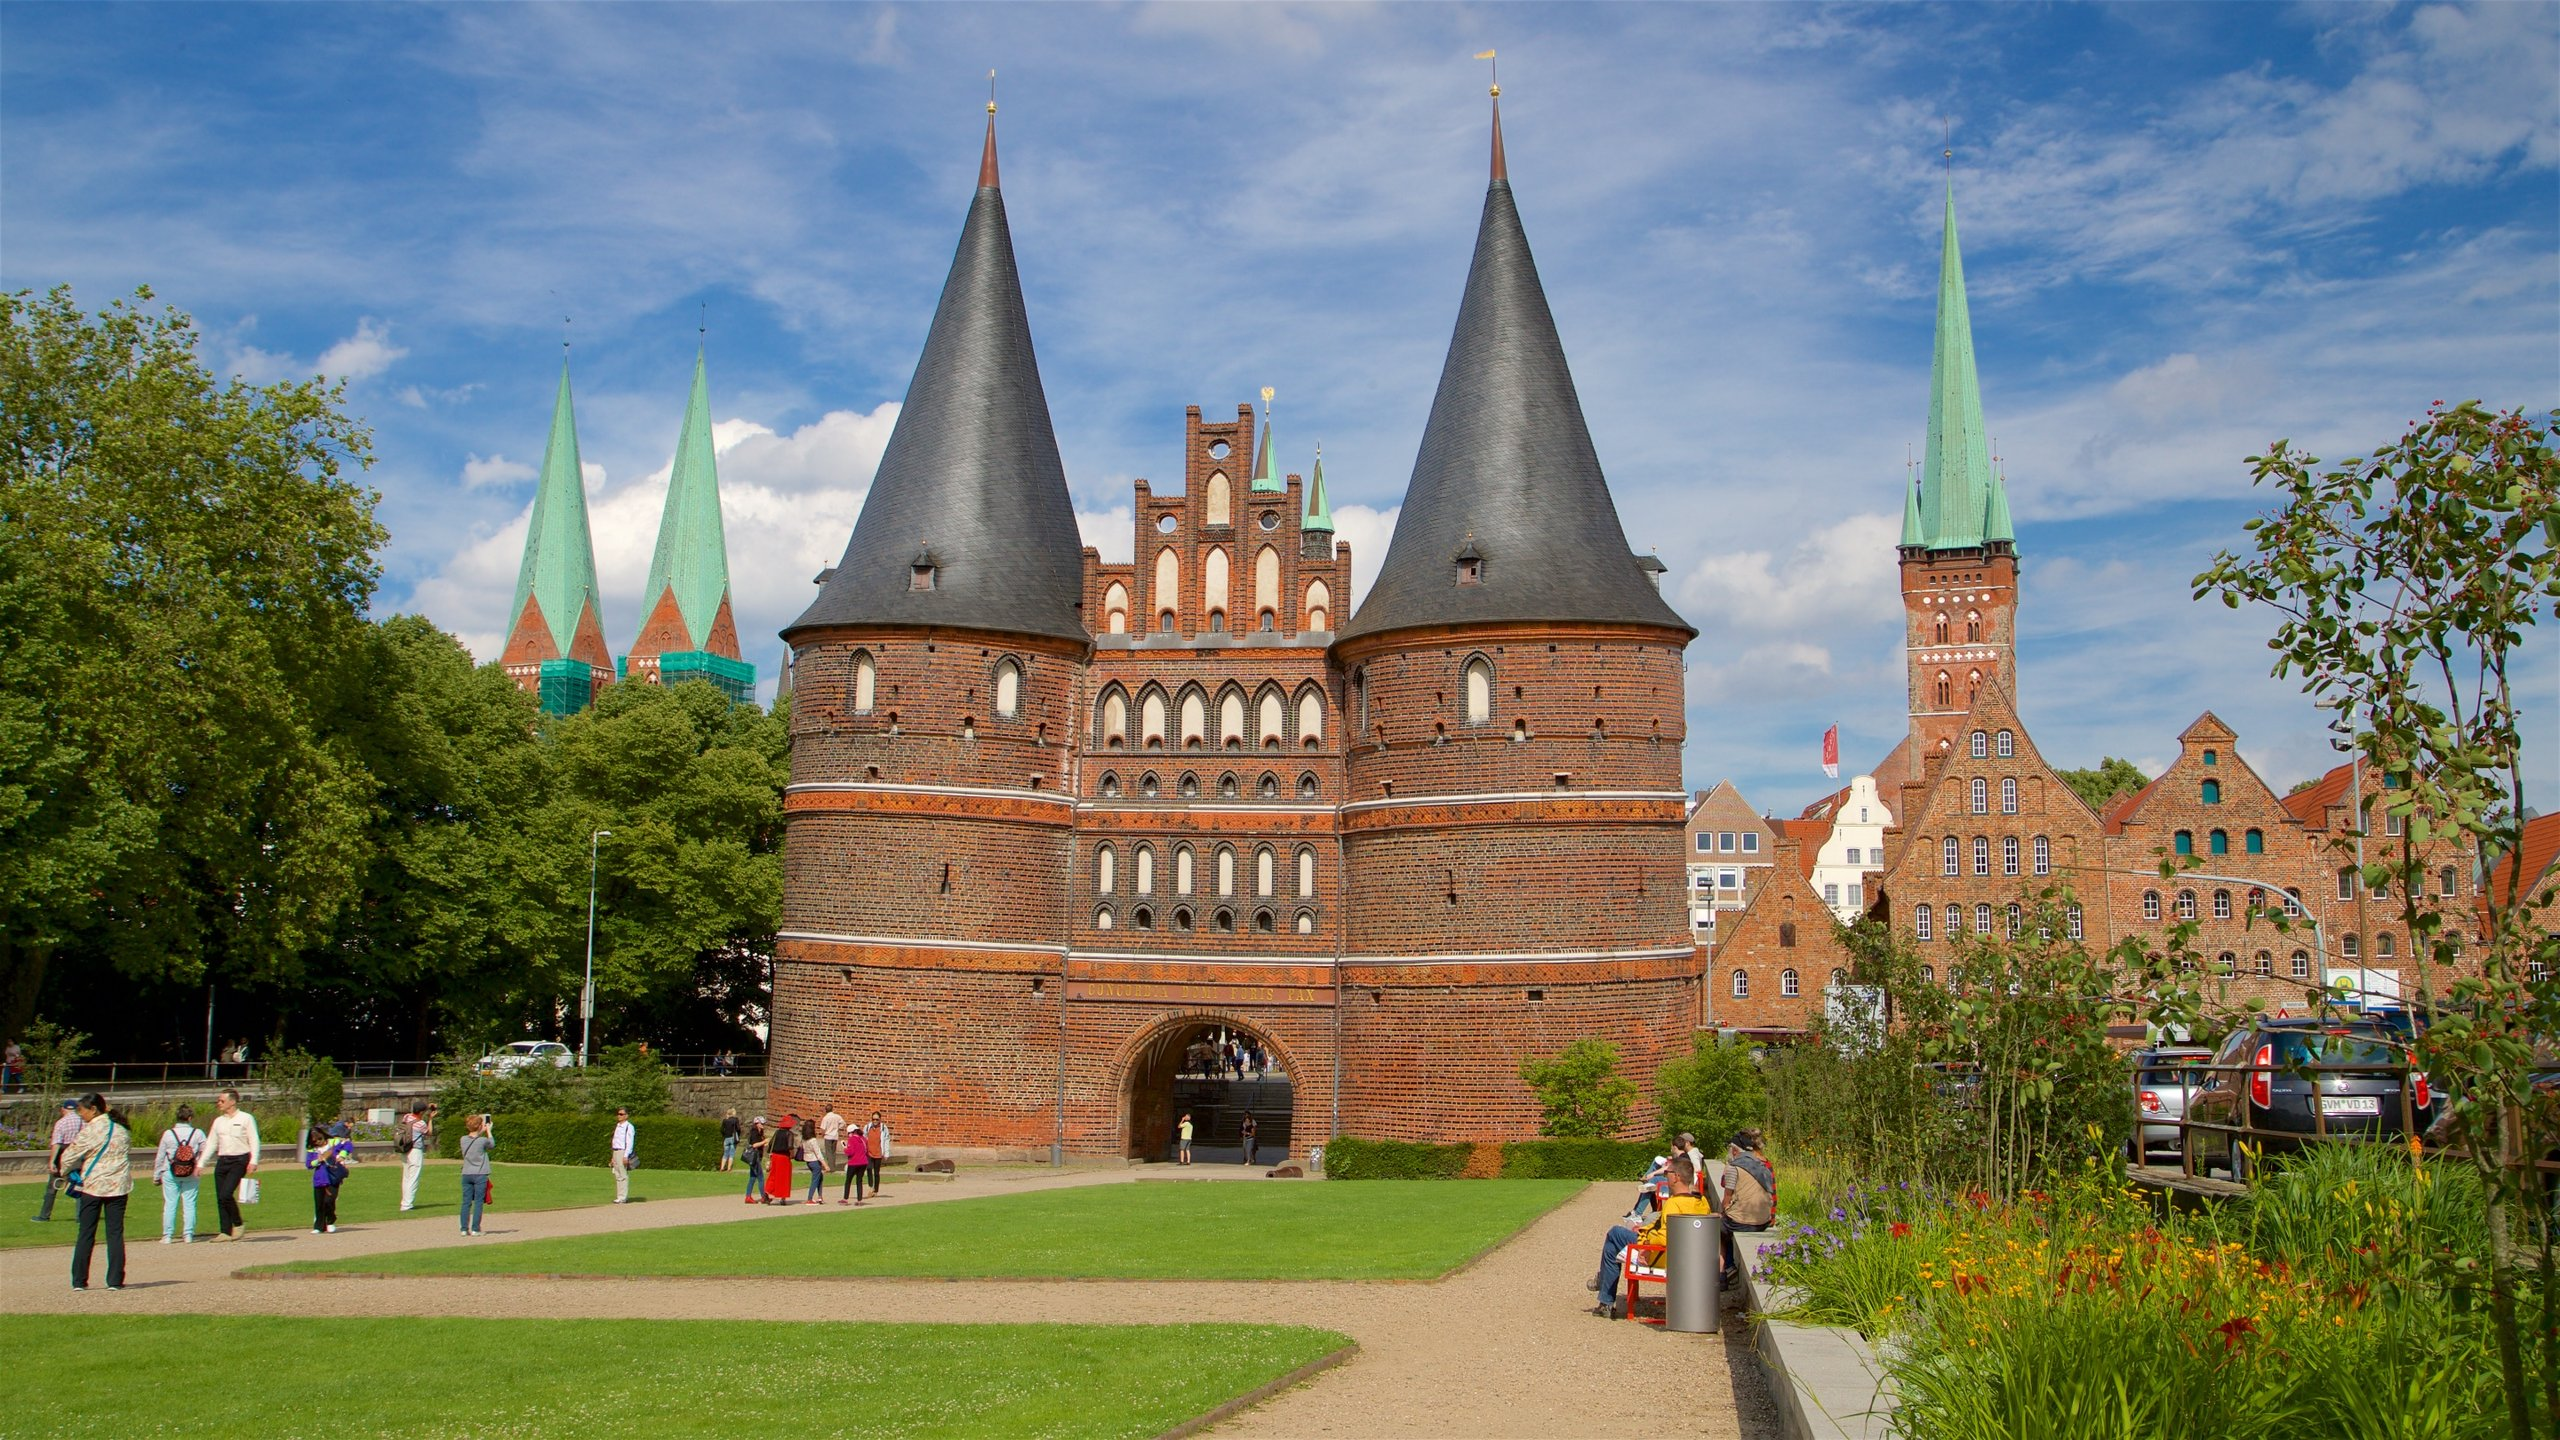 Once Luebeck's first line of defense against attackers, this landmark is now famous for its distinctive architecture and local history museum.